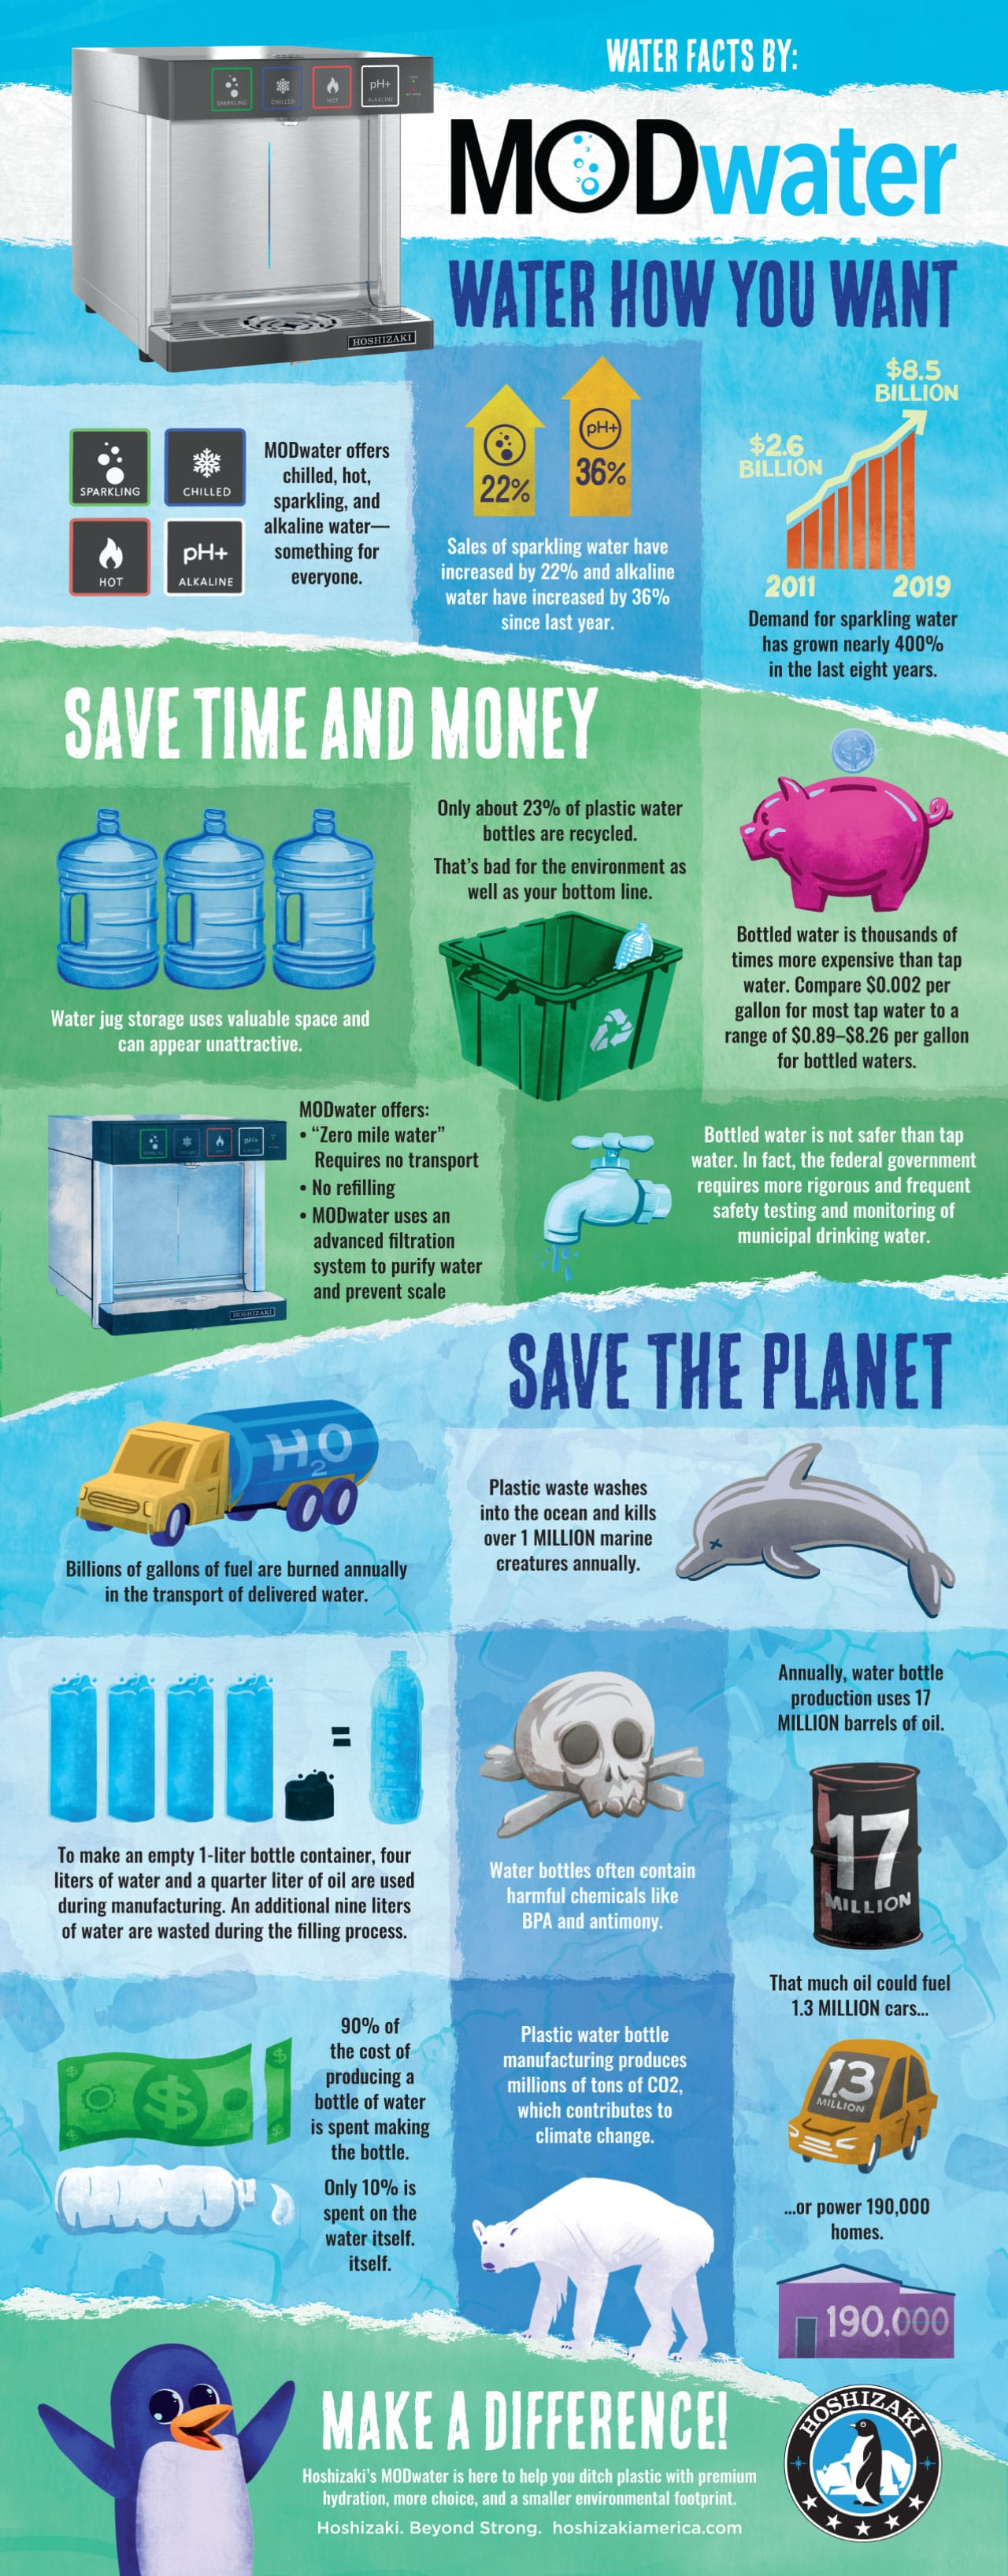 MODwater Infographic